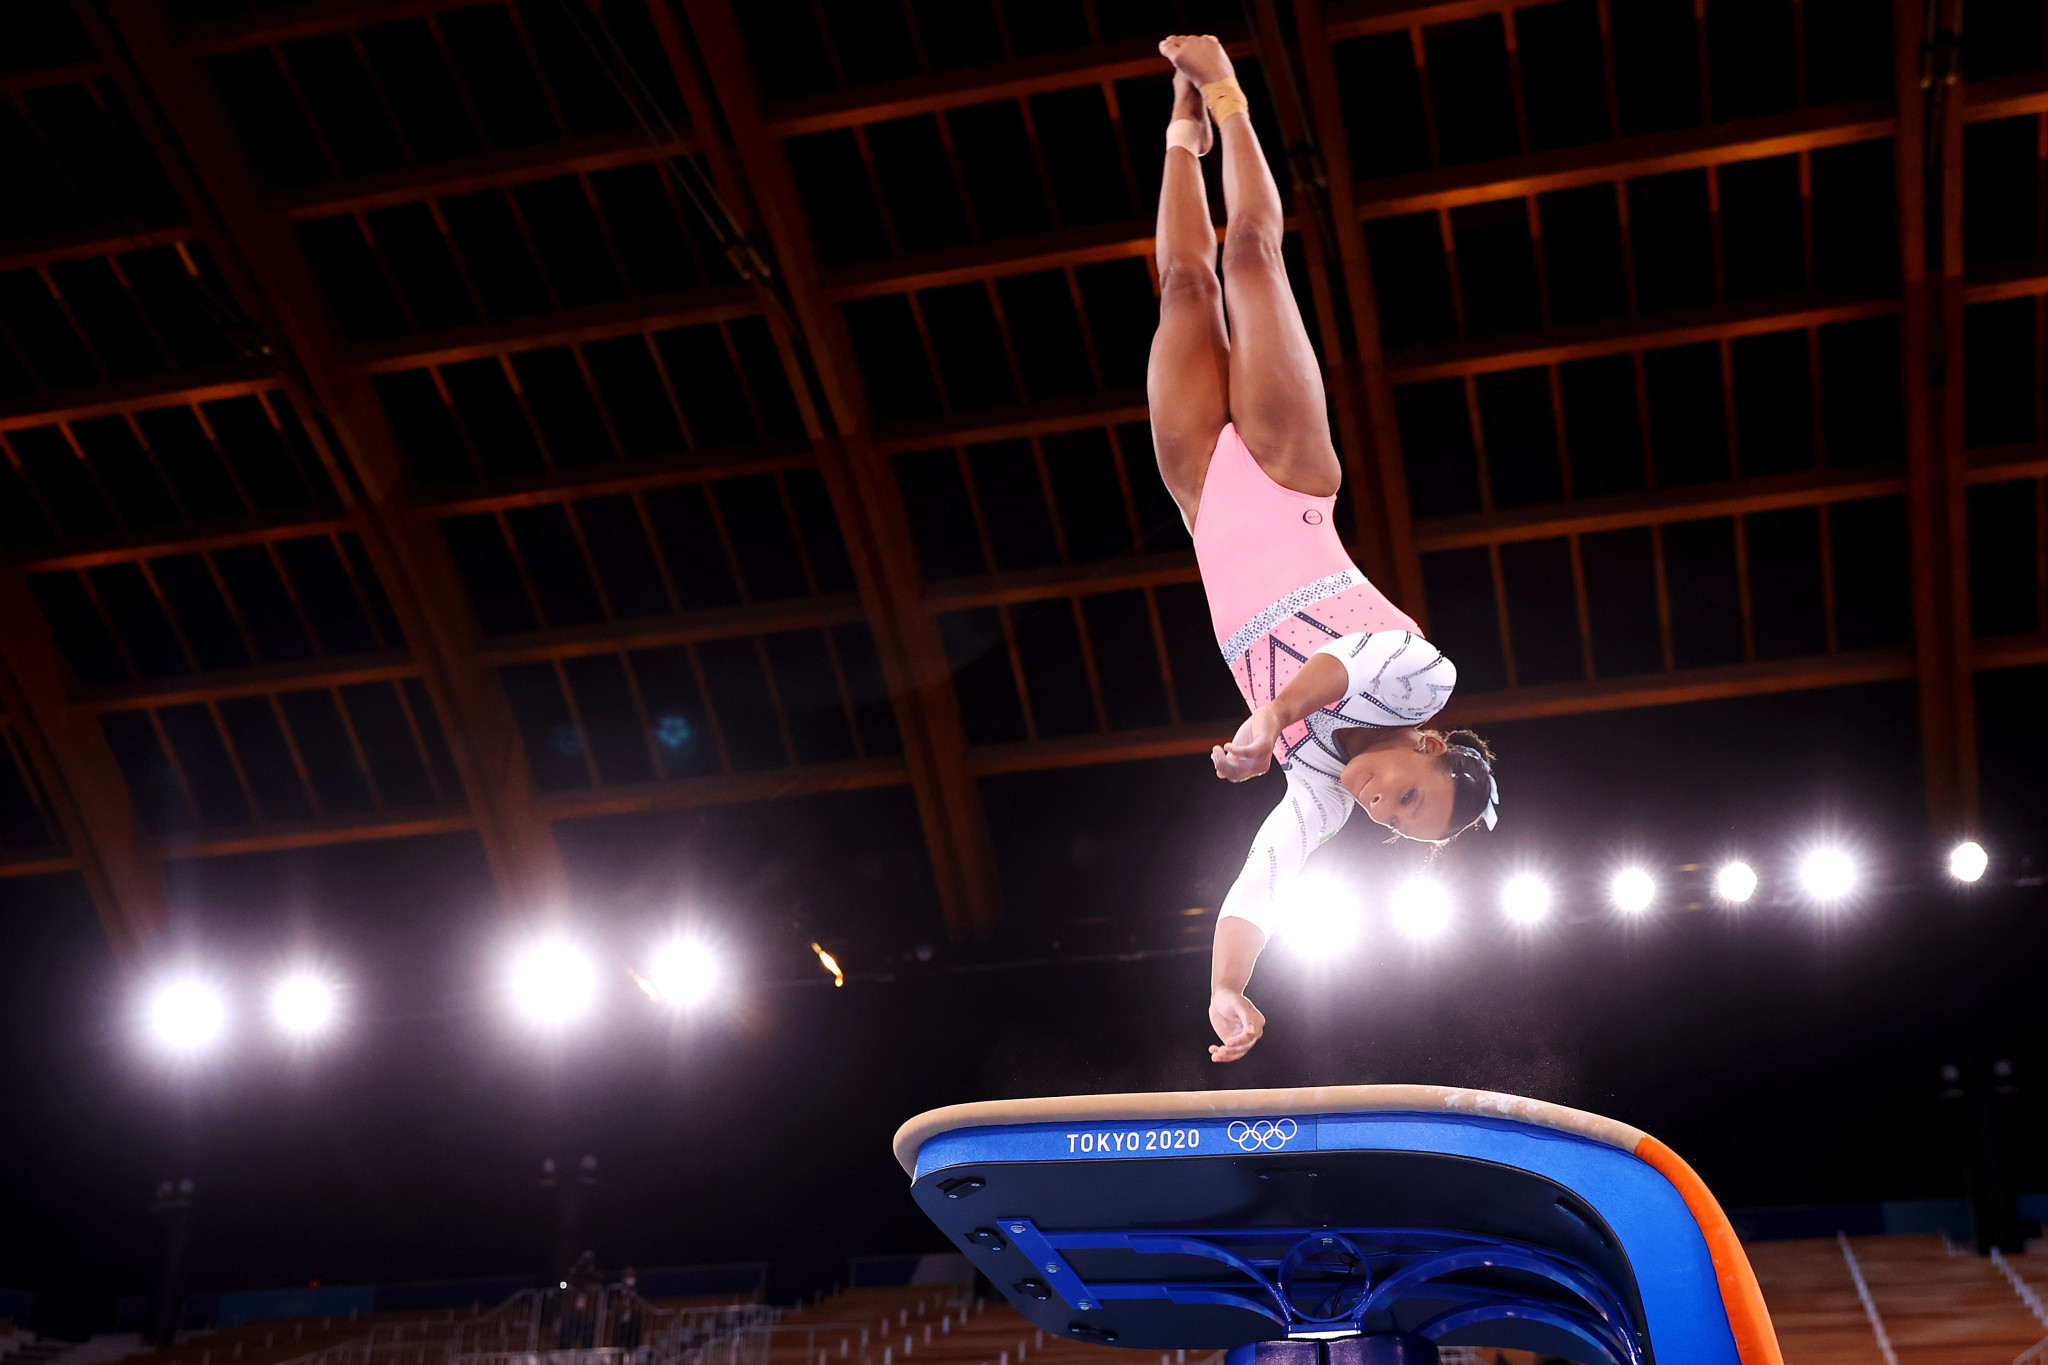 Rebeca Andrade won the women's vault and became the first Brazilian woman to win a gymnastics gold medal on a day of firsts at the Ariake Gymnastics Centre ©Getty Images